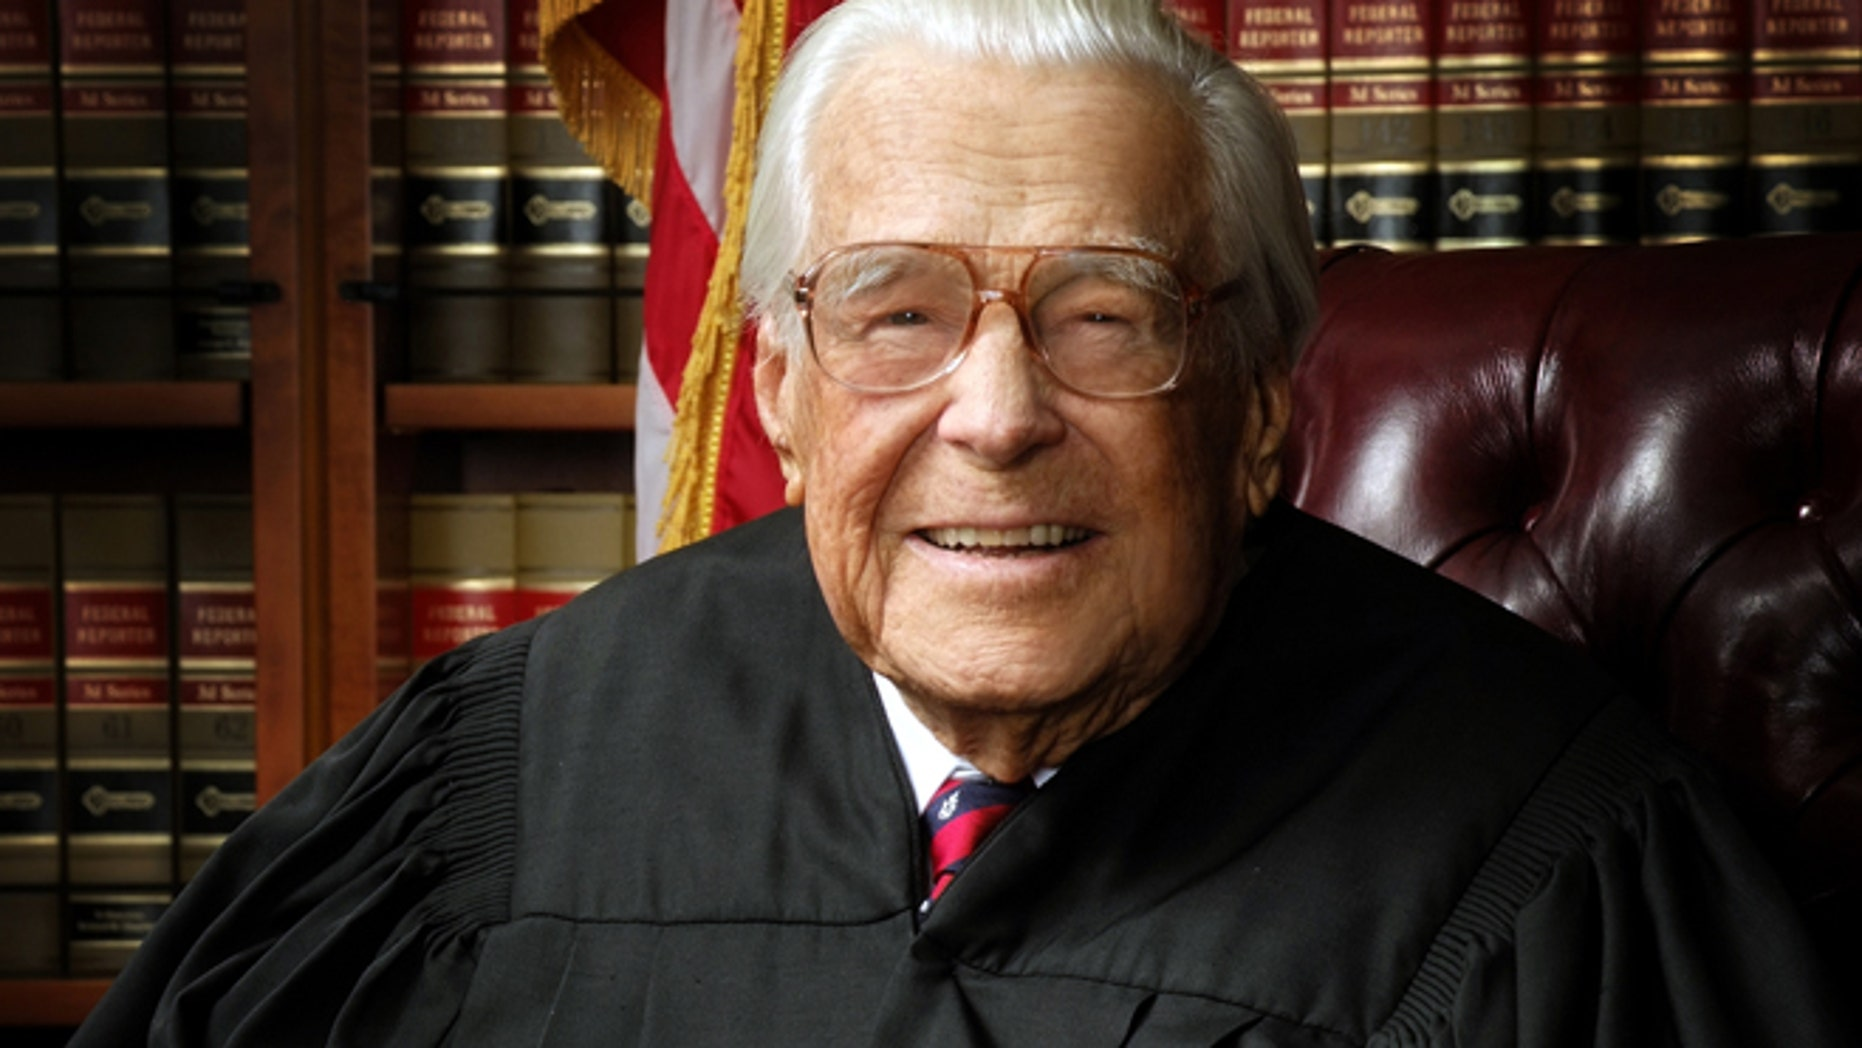 U.S. District Court shows Senior District Judge Robert J Kelleher, who was the oldest-serving federal jurist in the nation, dies at 99 years old.